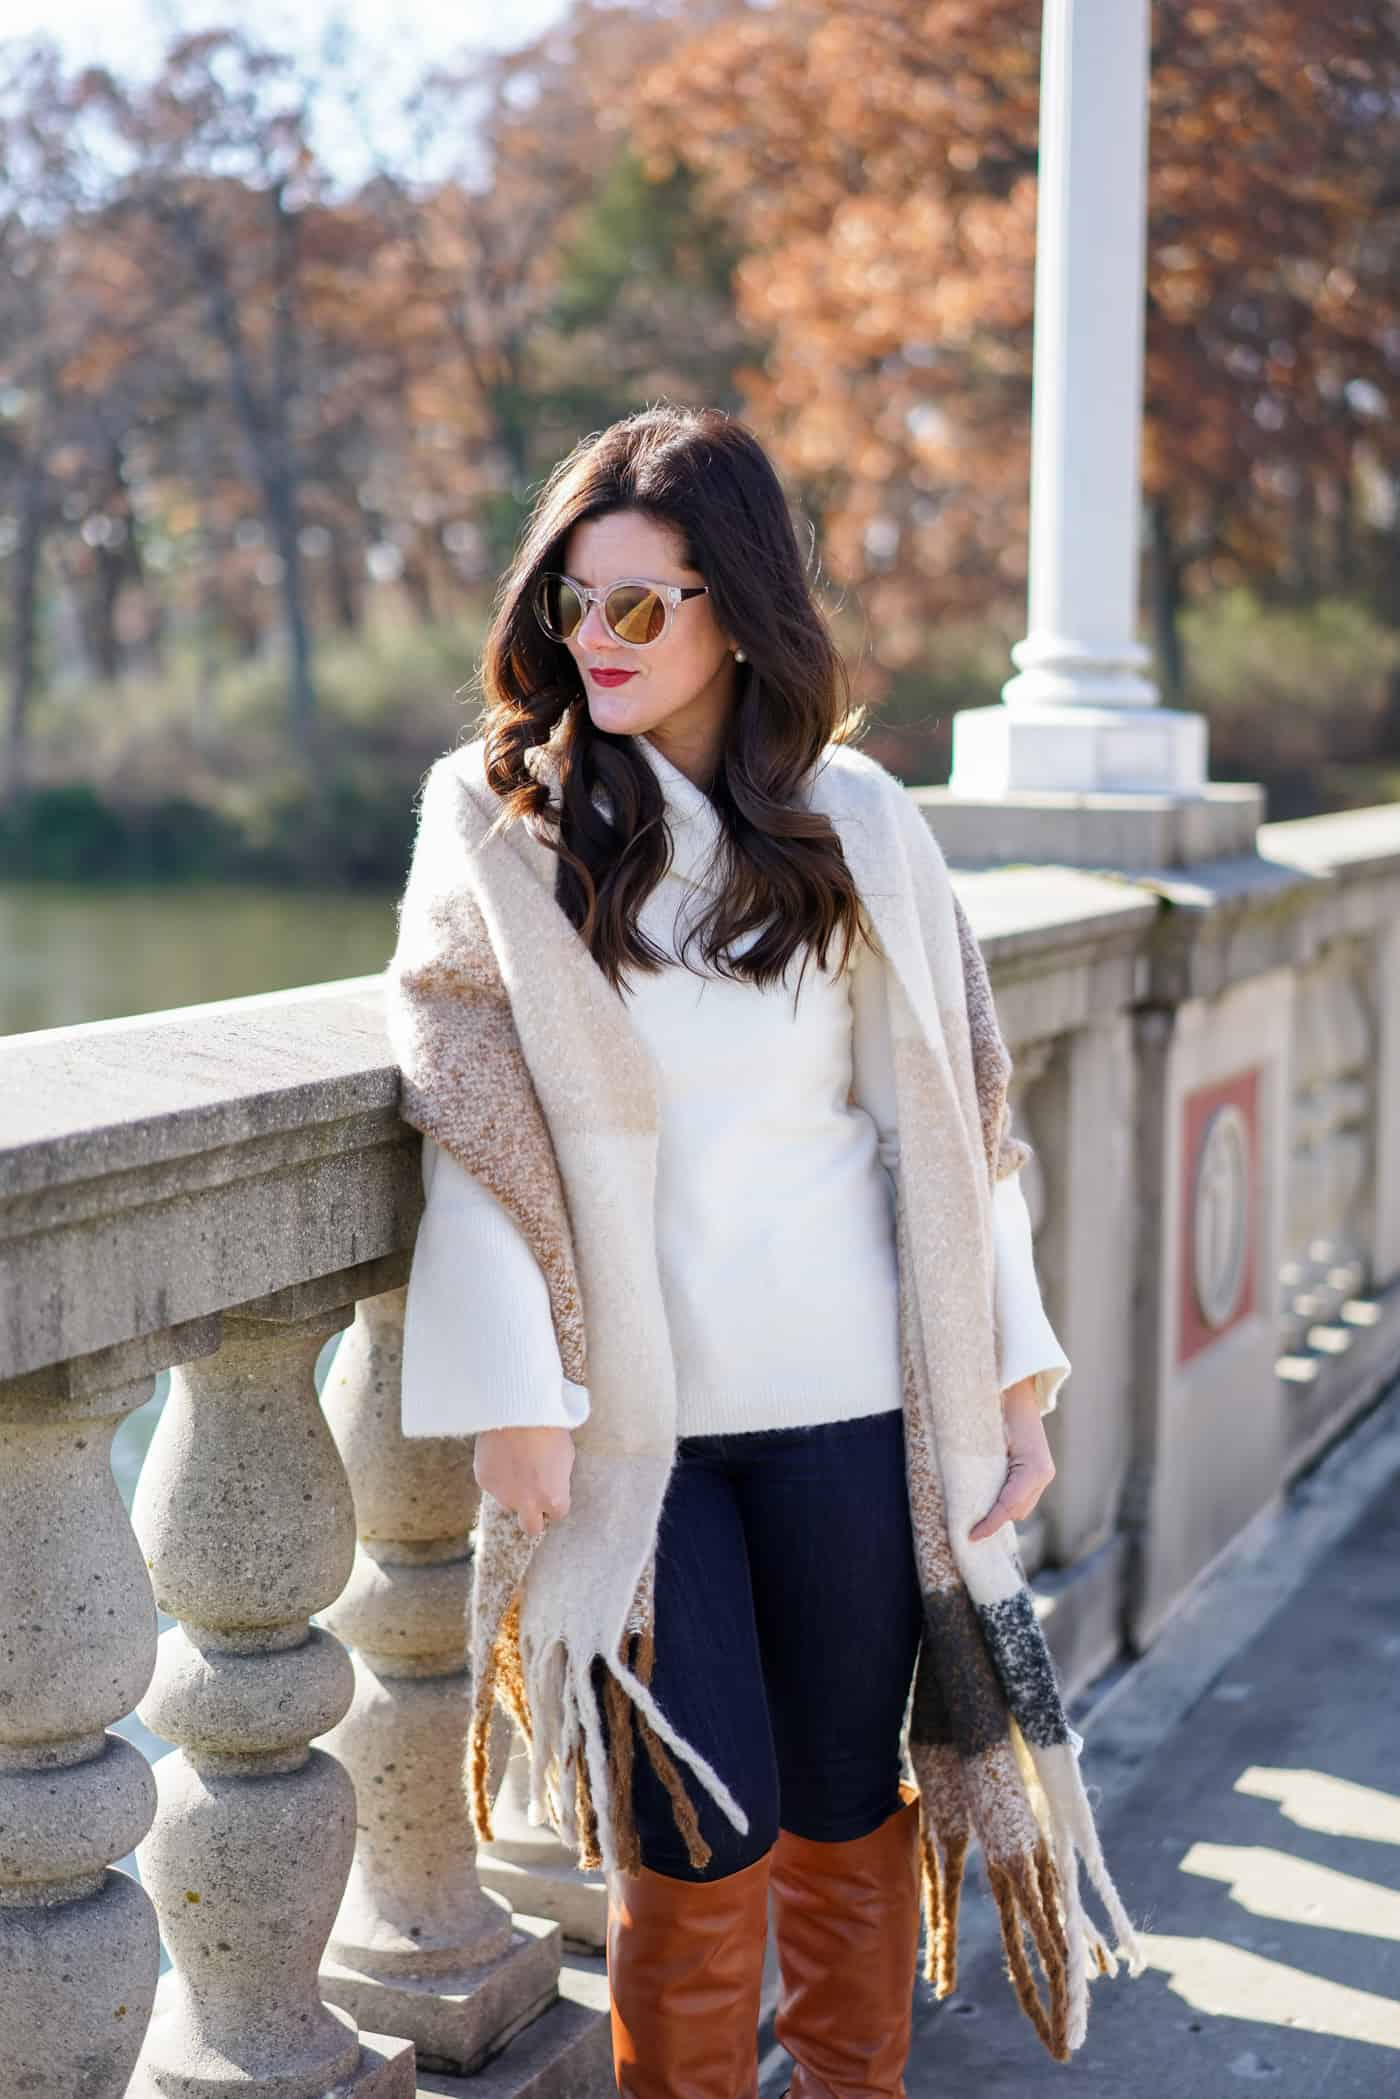 A Lily Love Affair wearing a long plaid scarf, cream turtleneck sweater and tan knee high boots